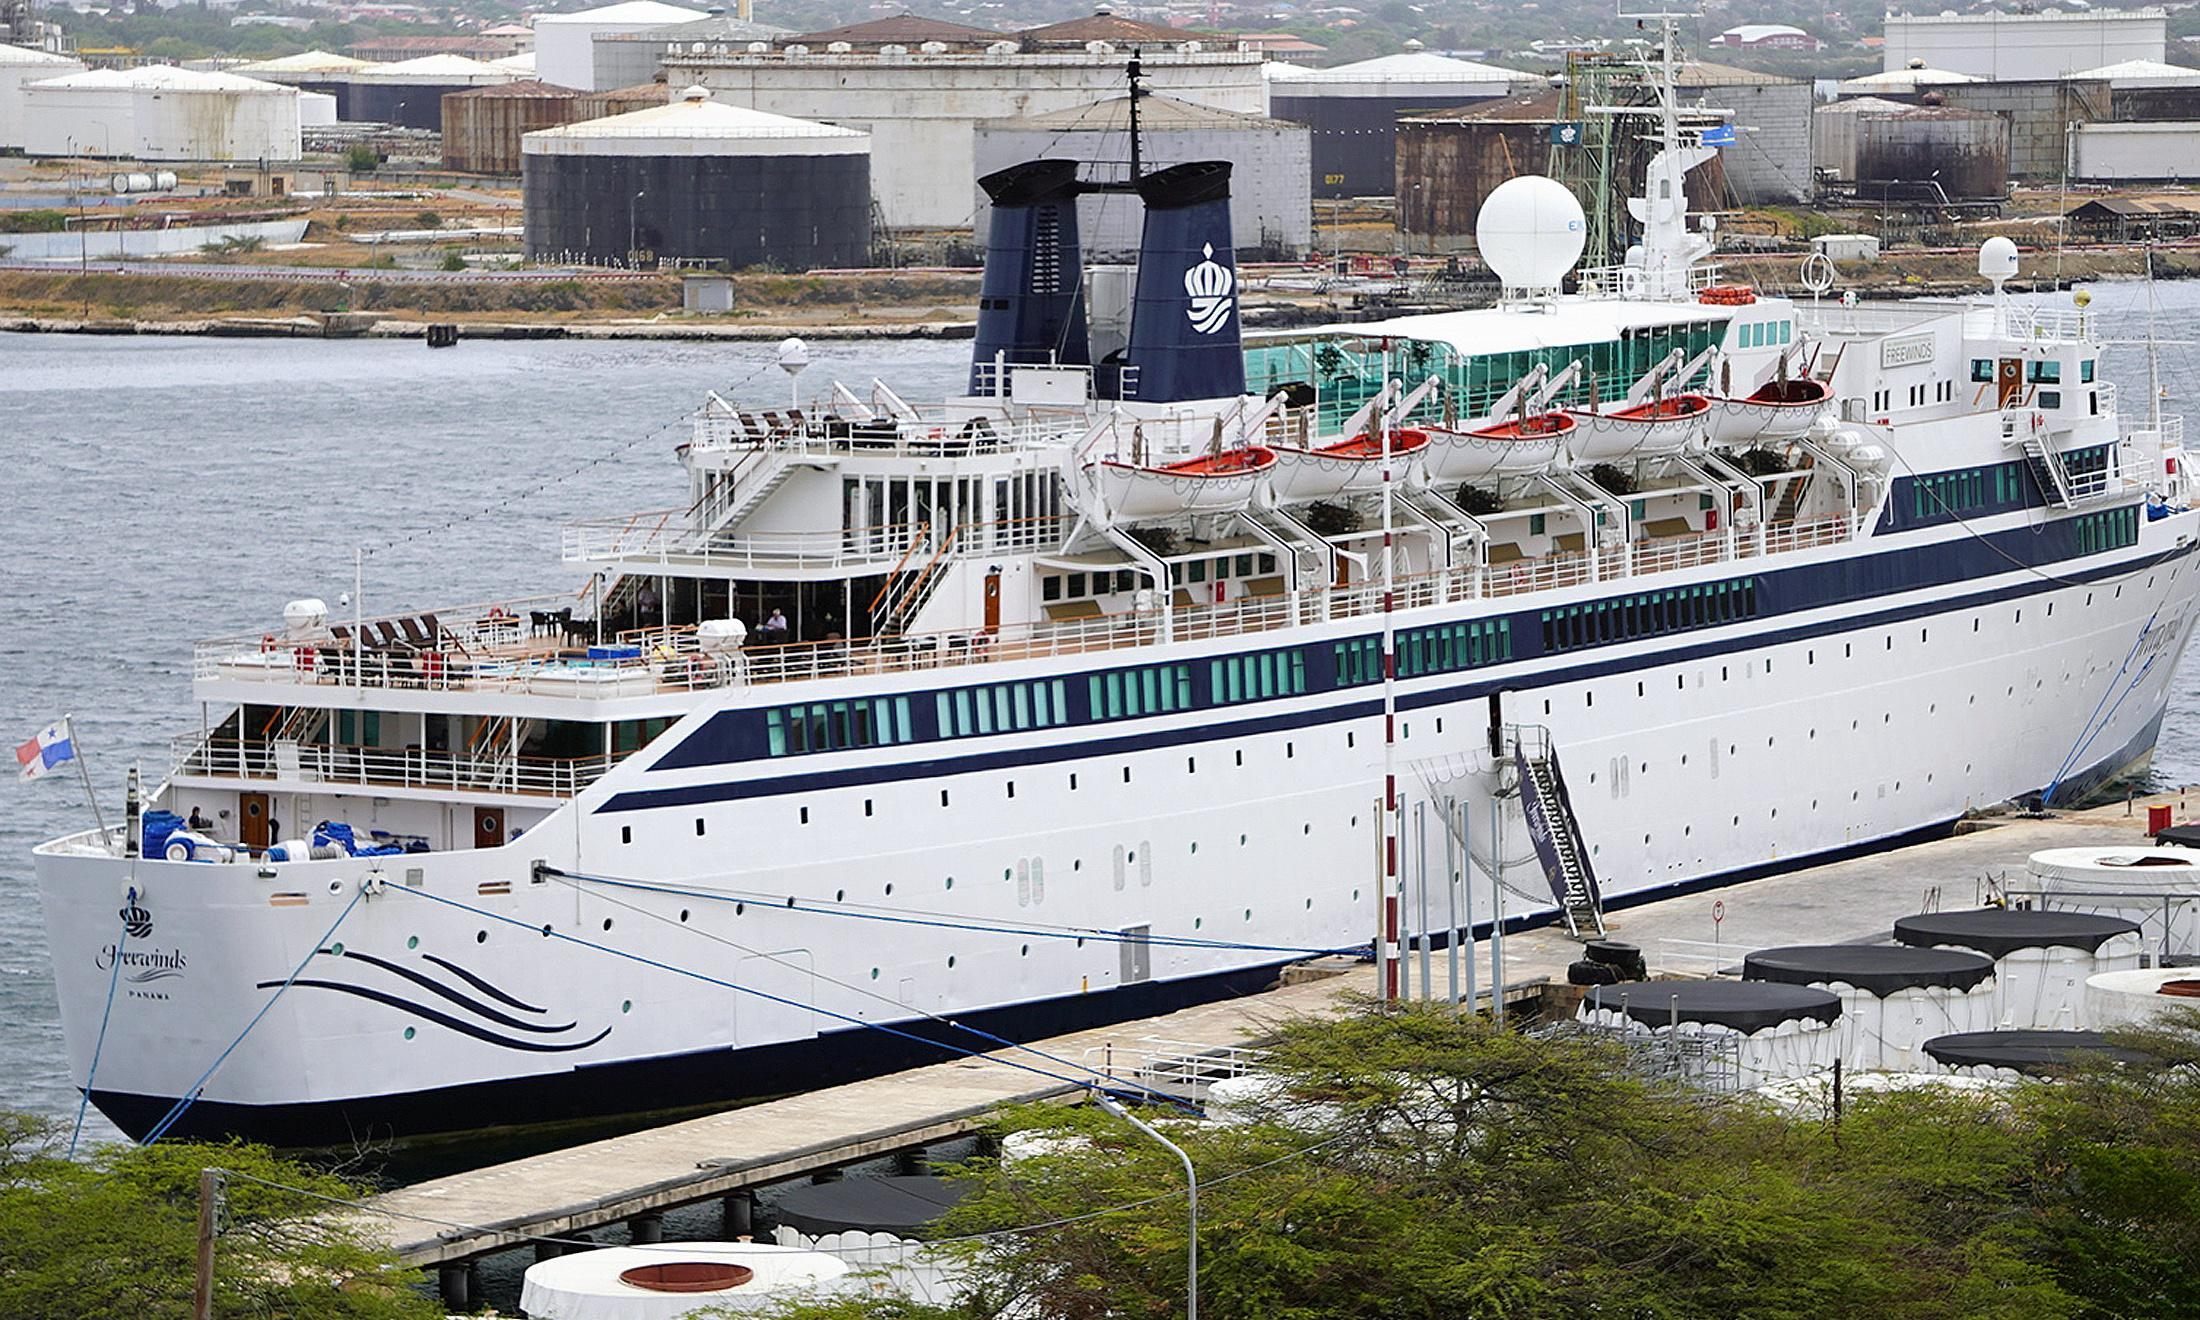 Scientology cruise ship still quarantined as passengers are tested for measles